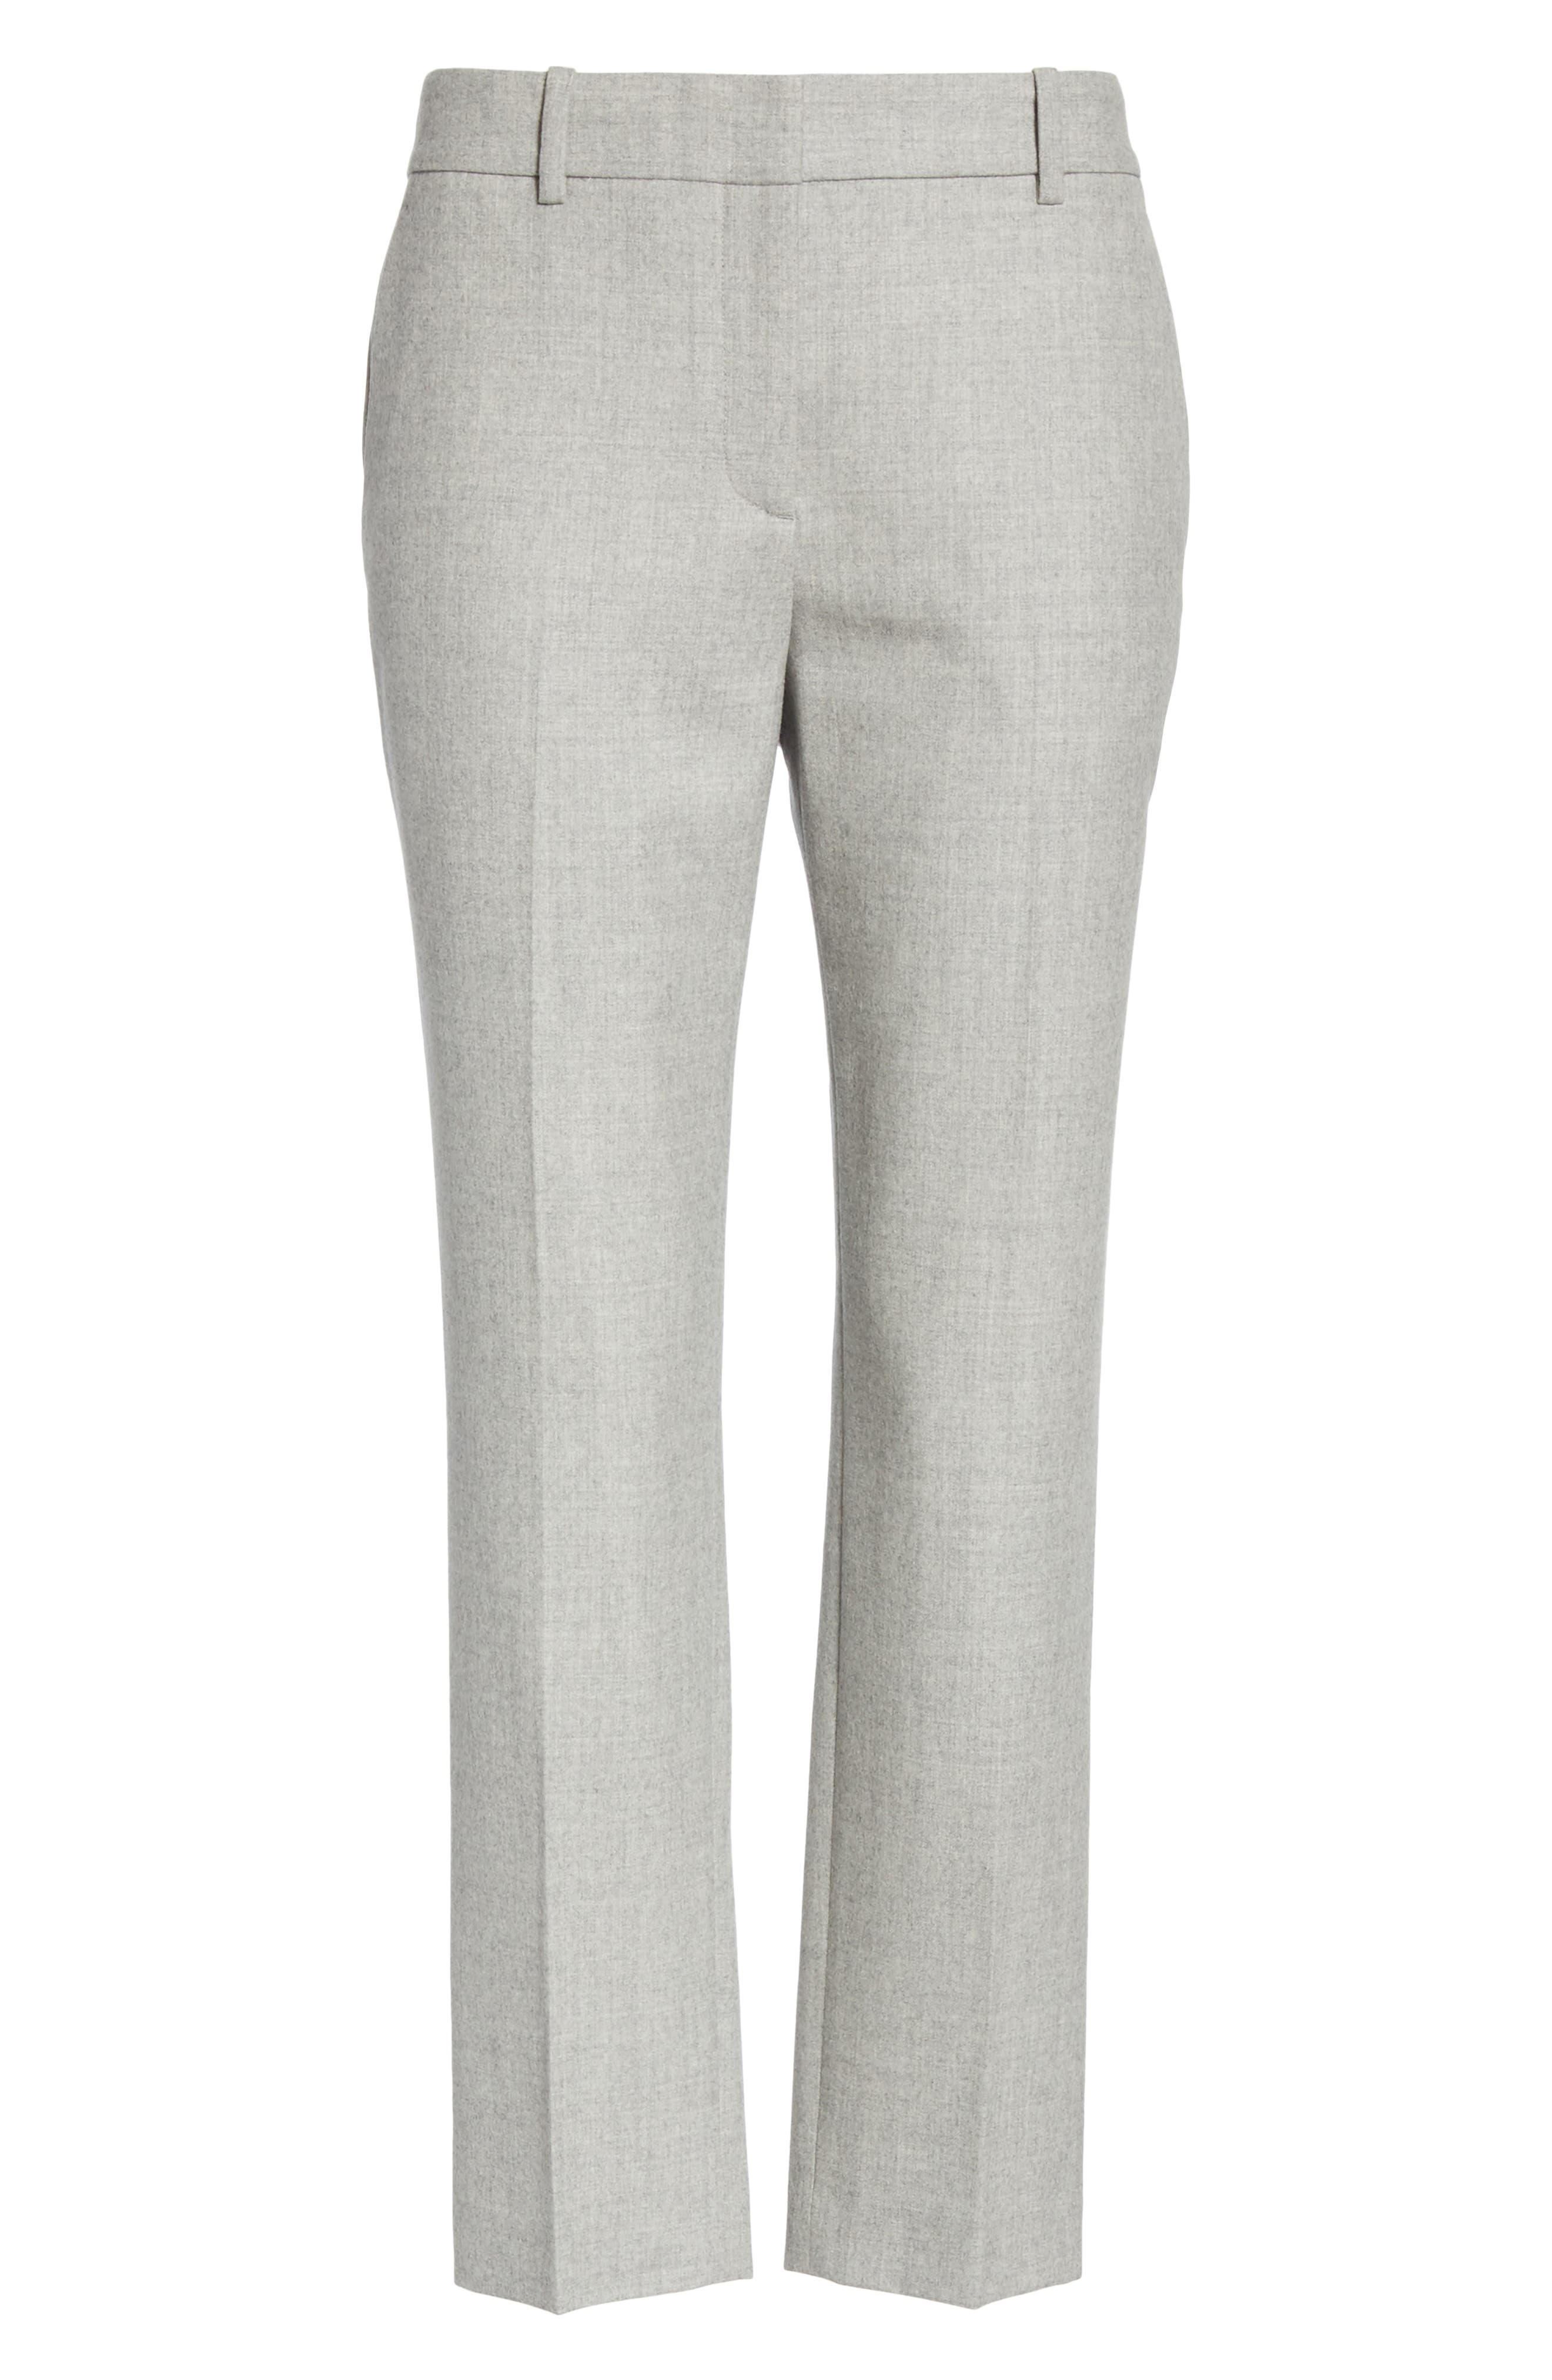 Treeca Flannel Ankle Pants,                             Alternate thumbnail 6, color,                             PALE GREY